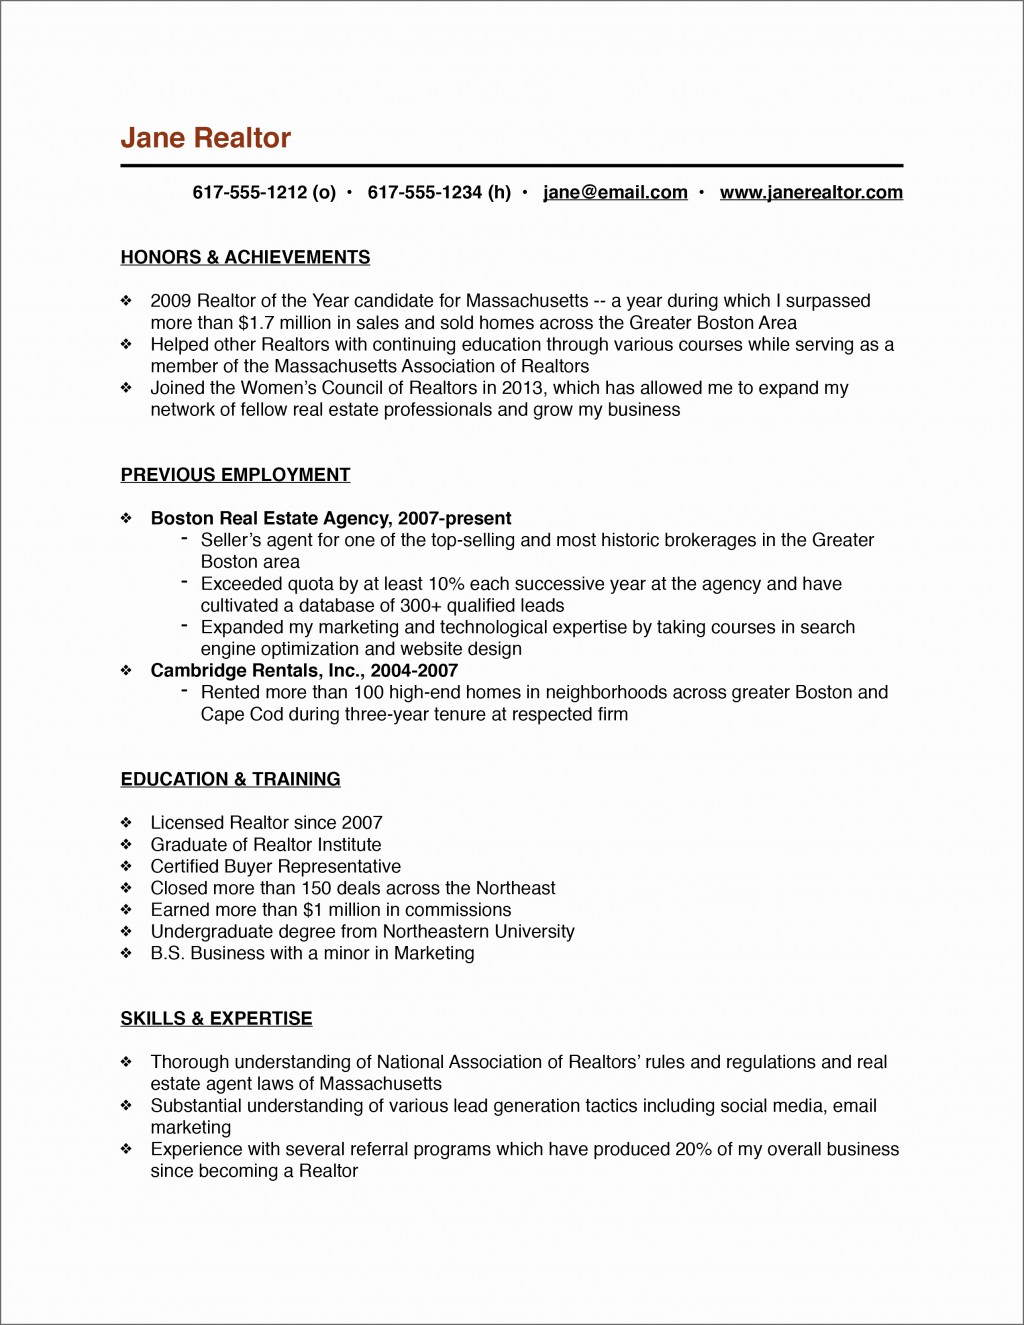 017 Resume For Social Work Best Of Example Evidence Based Practice In Essay Examples Inspiratio Scholarshipdmissions Graduate Case Study Reflective Entrance Freessessment Why I Want To Outstanding Be A Worker Do Become Became Large